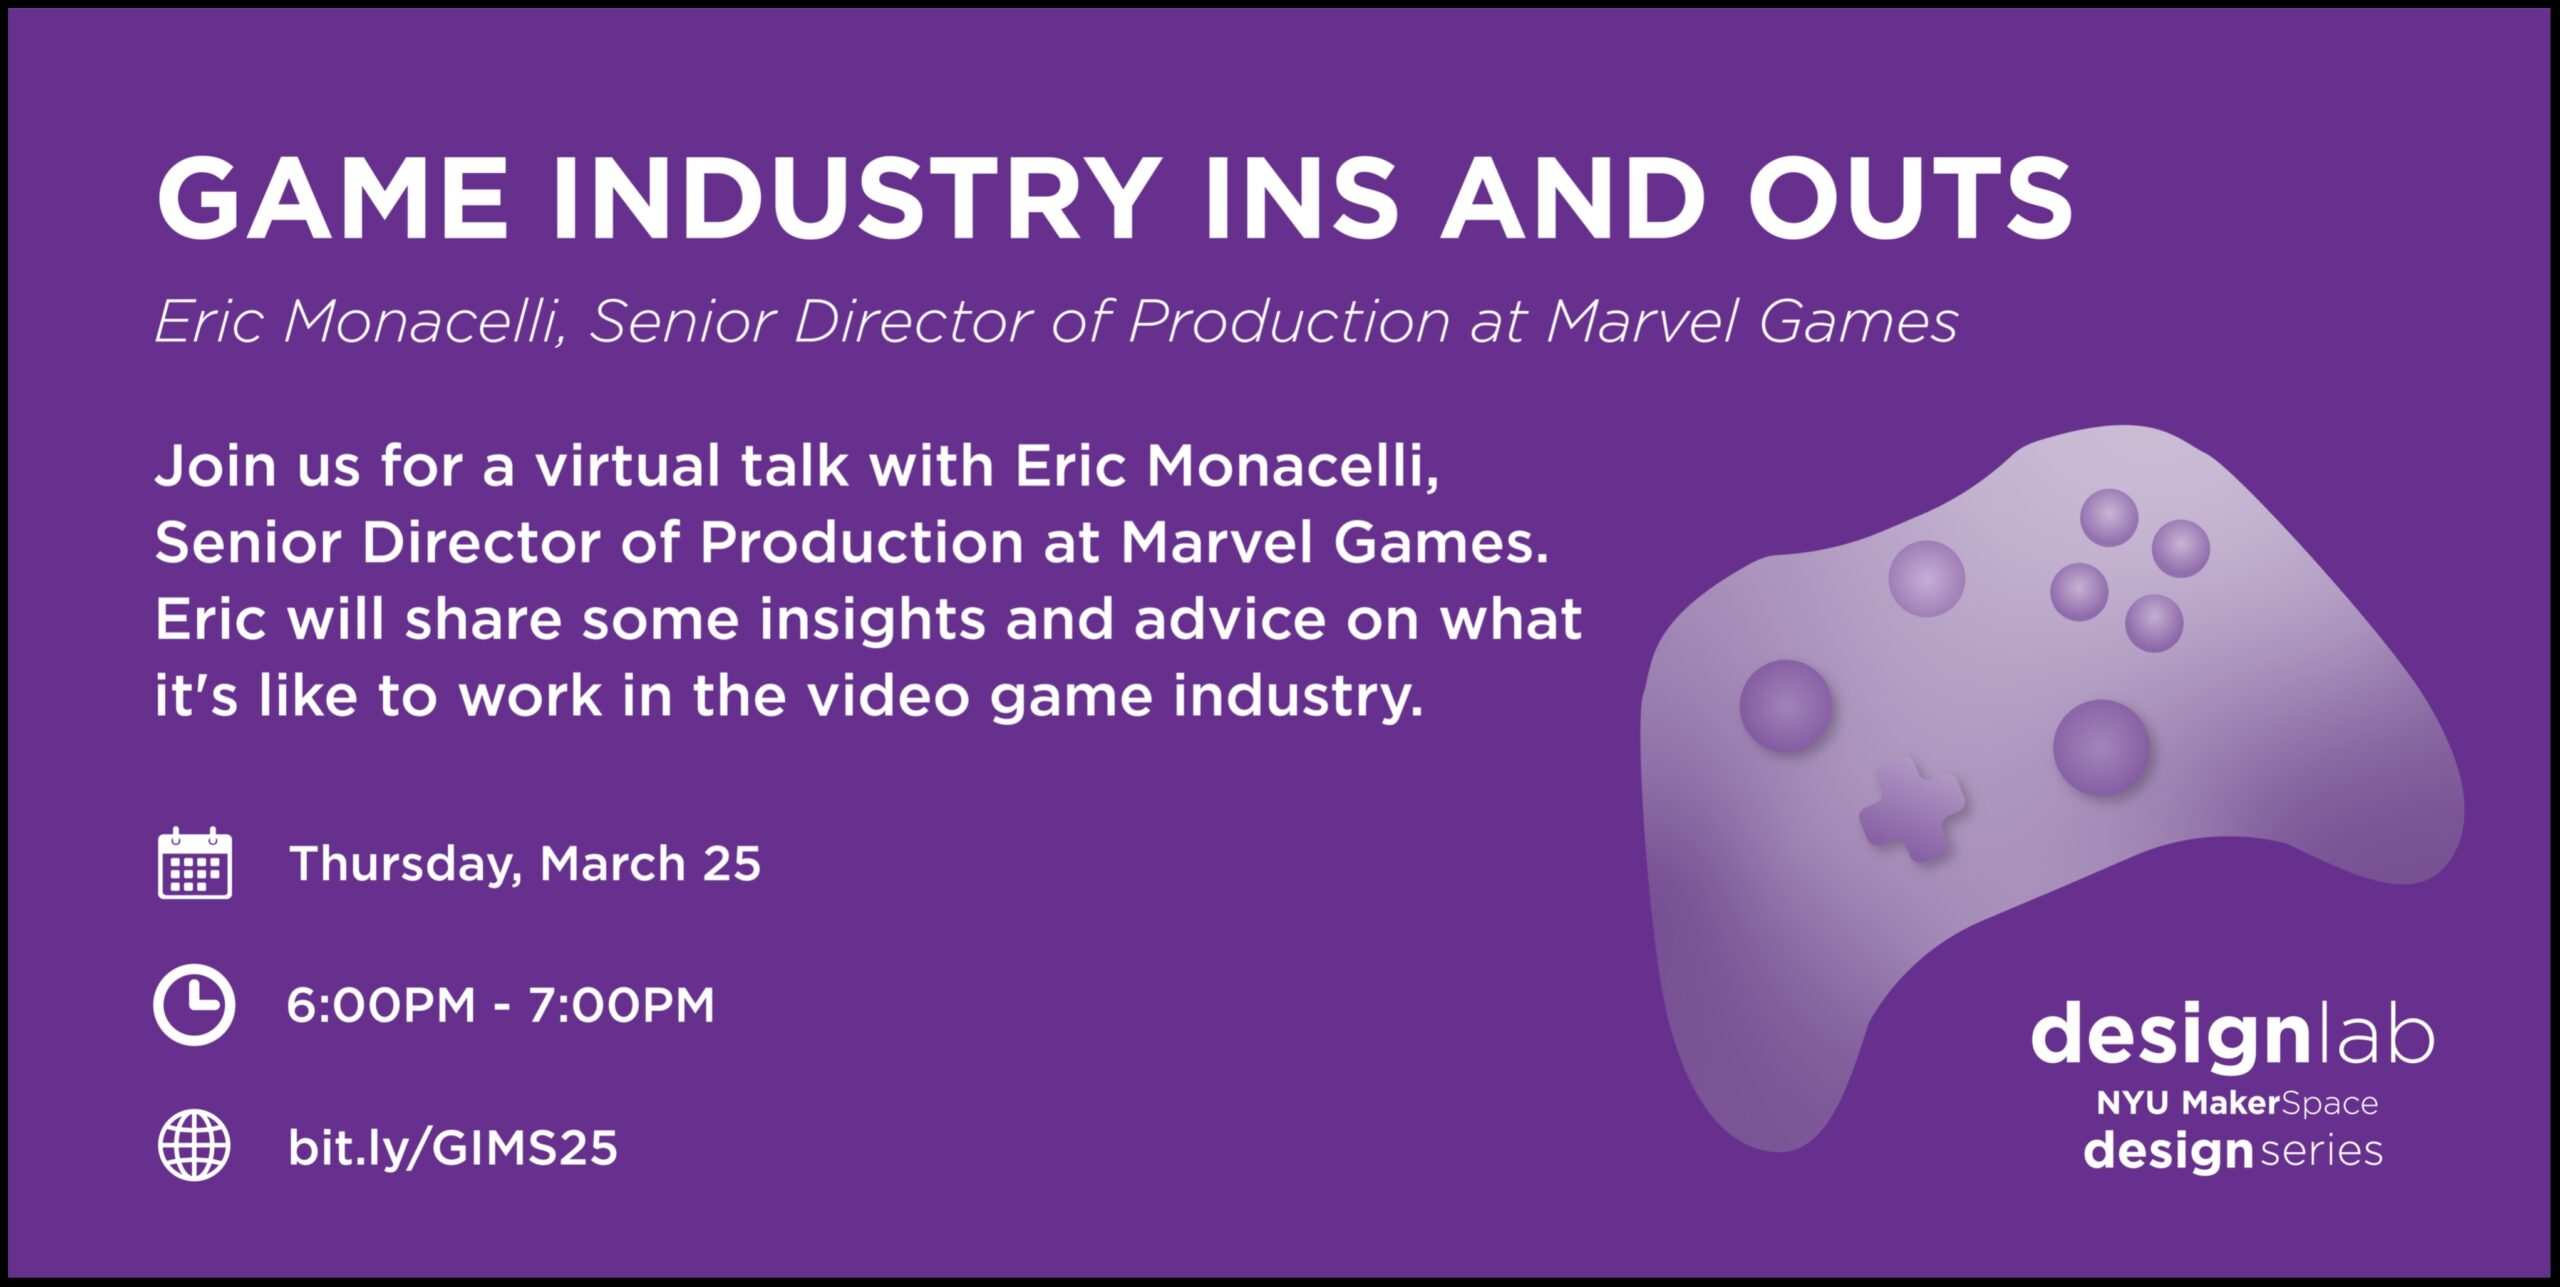 Game Industry Ins and Outs Flyer